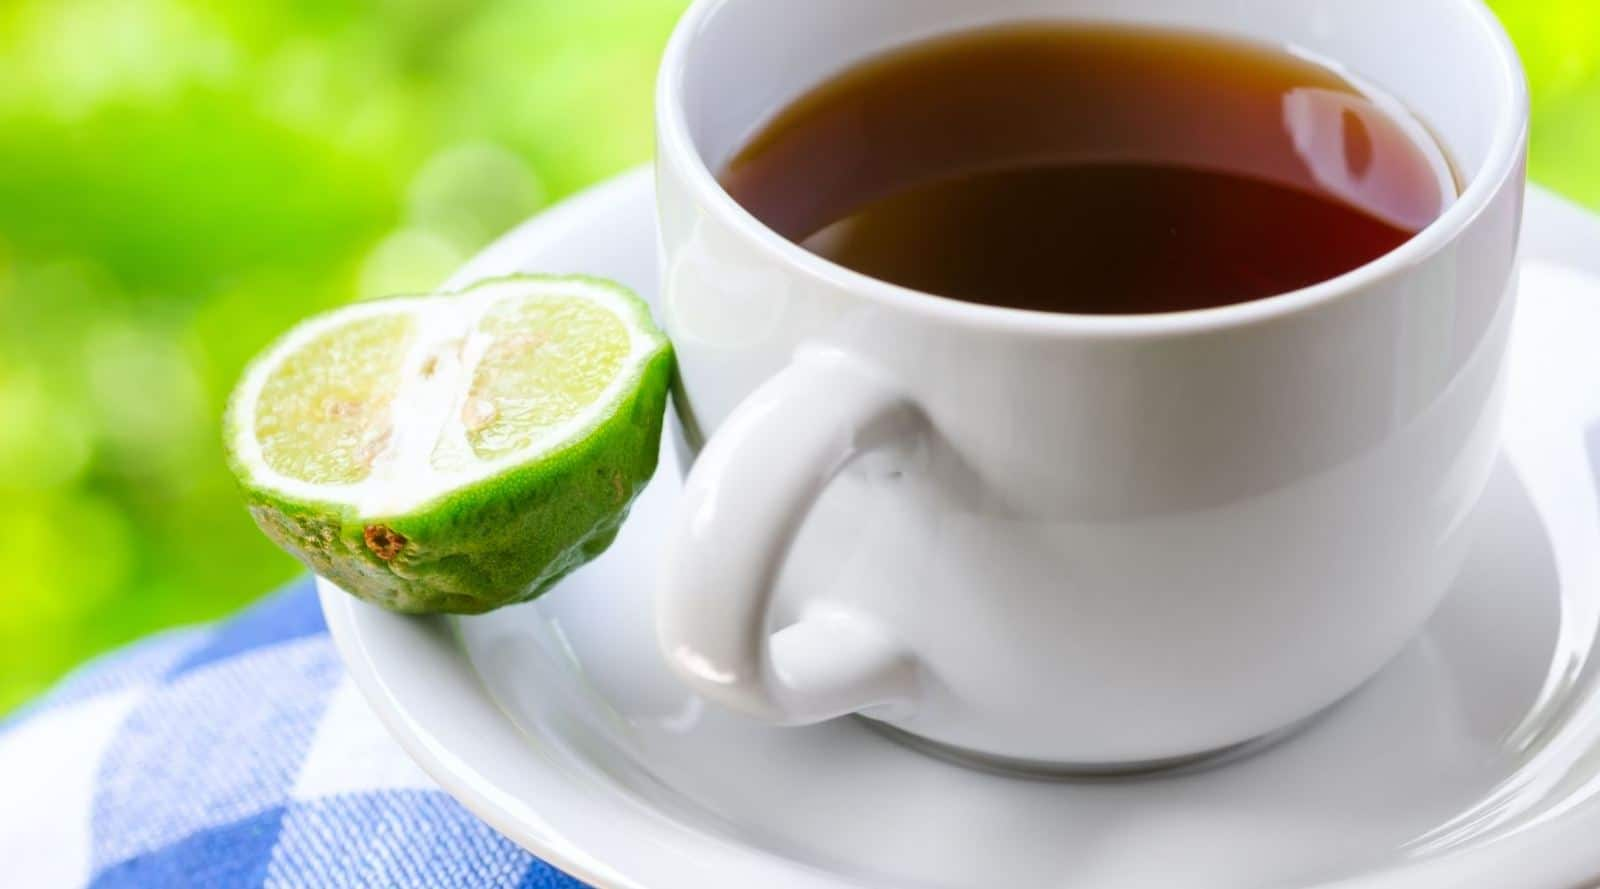 earl grey vs english breakfast tea: knowing the difference